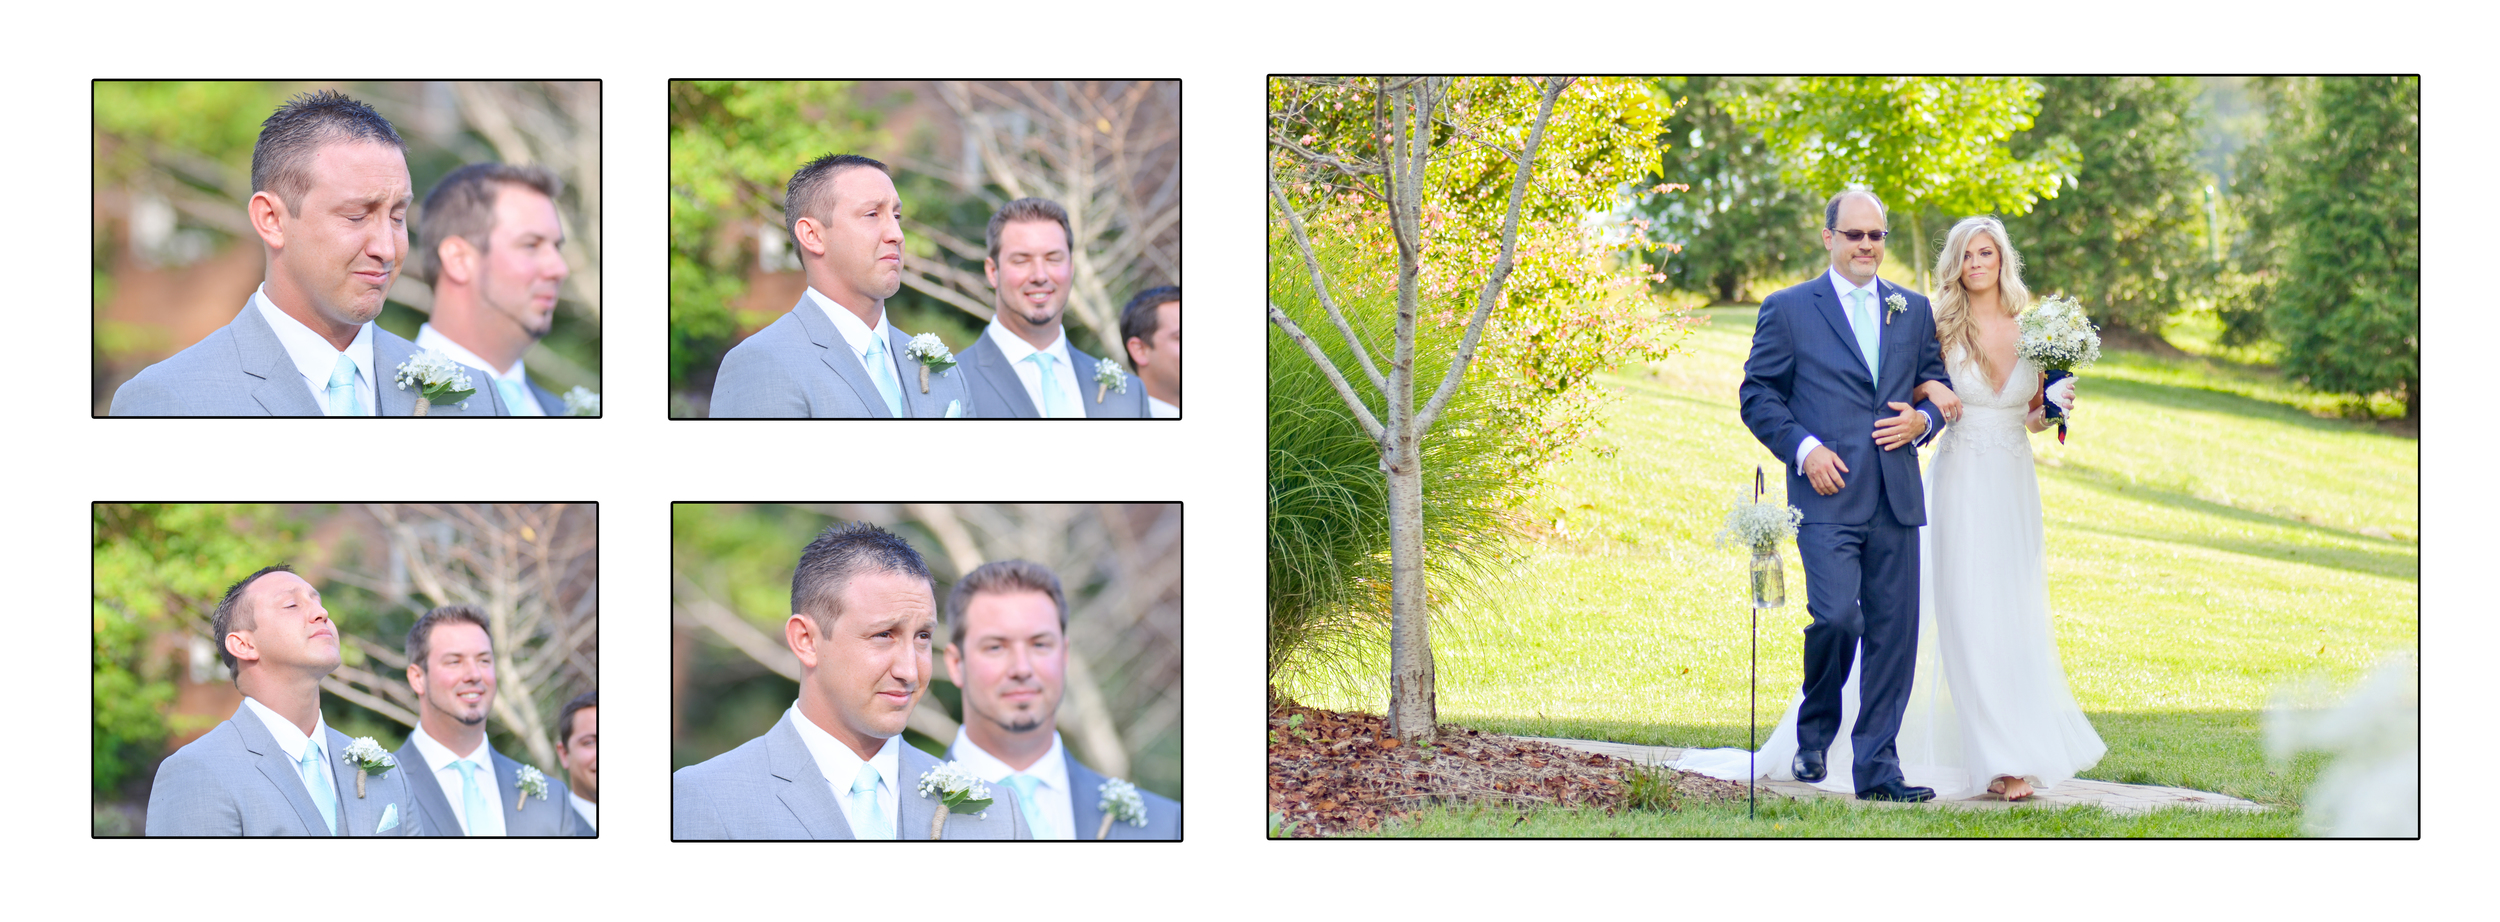 One of my absolute favorite parts of the ceremony is watching the grooms expression as his bride walks towards him. & this groom was so expressive. <3 so cute!